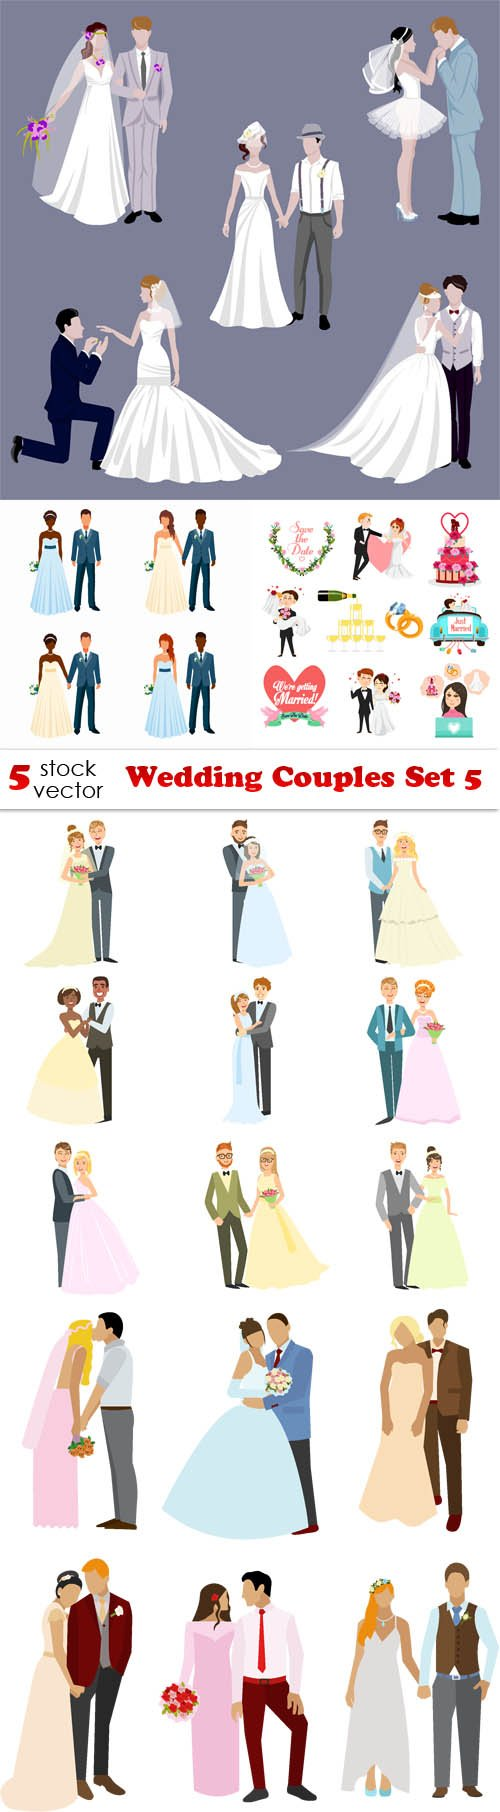 Vectors - Wedding Couples Set 5